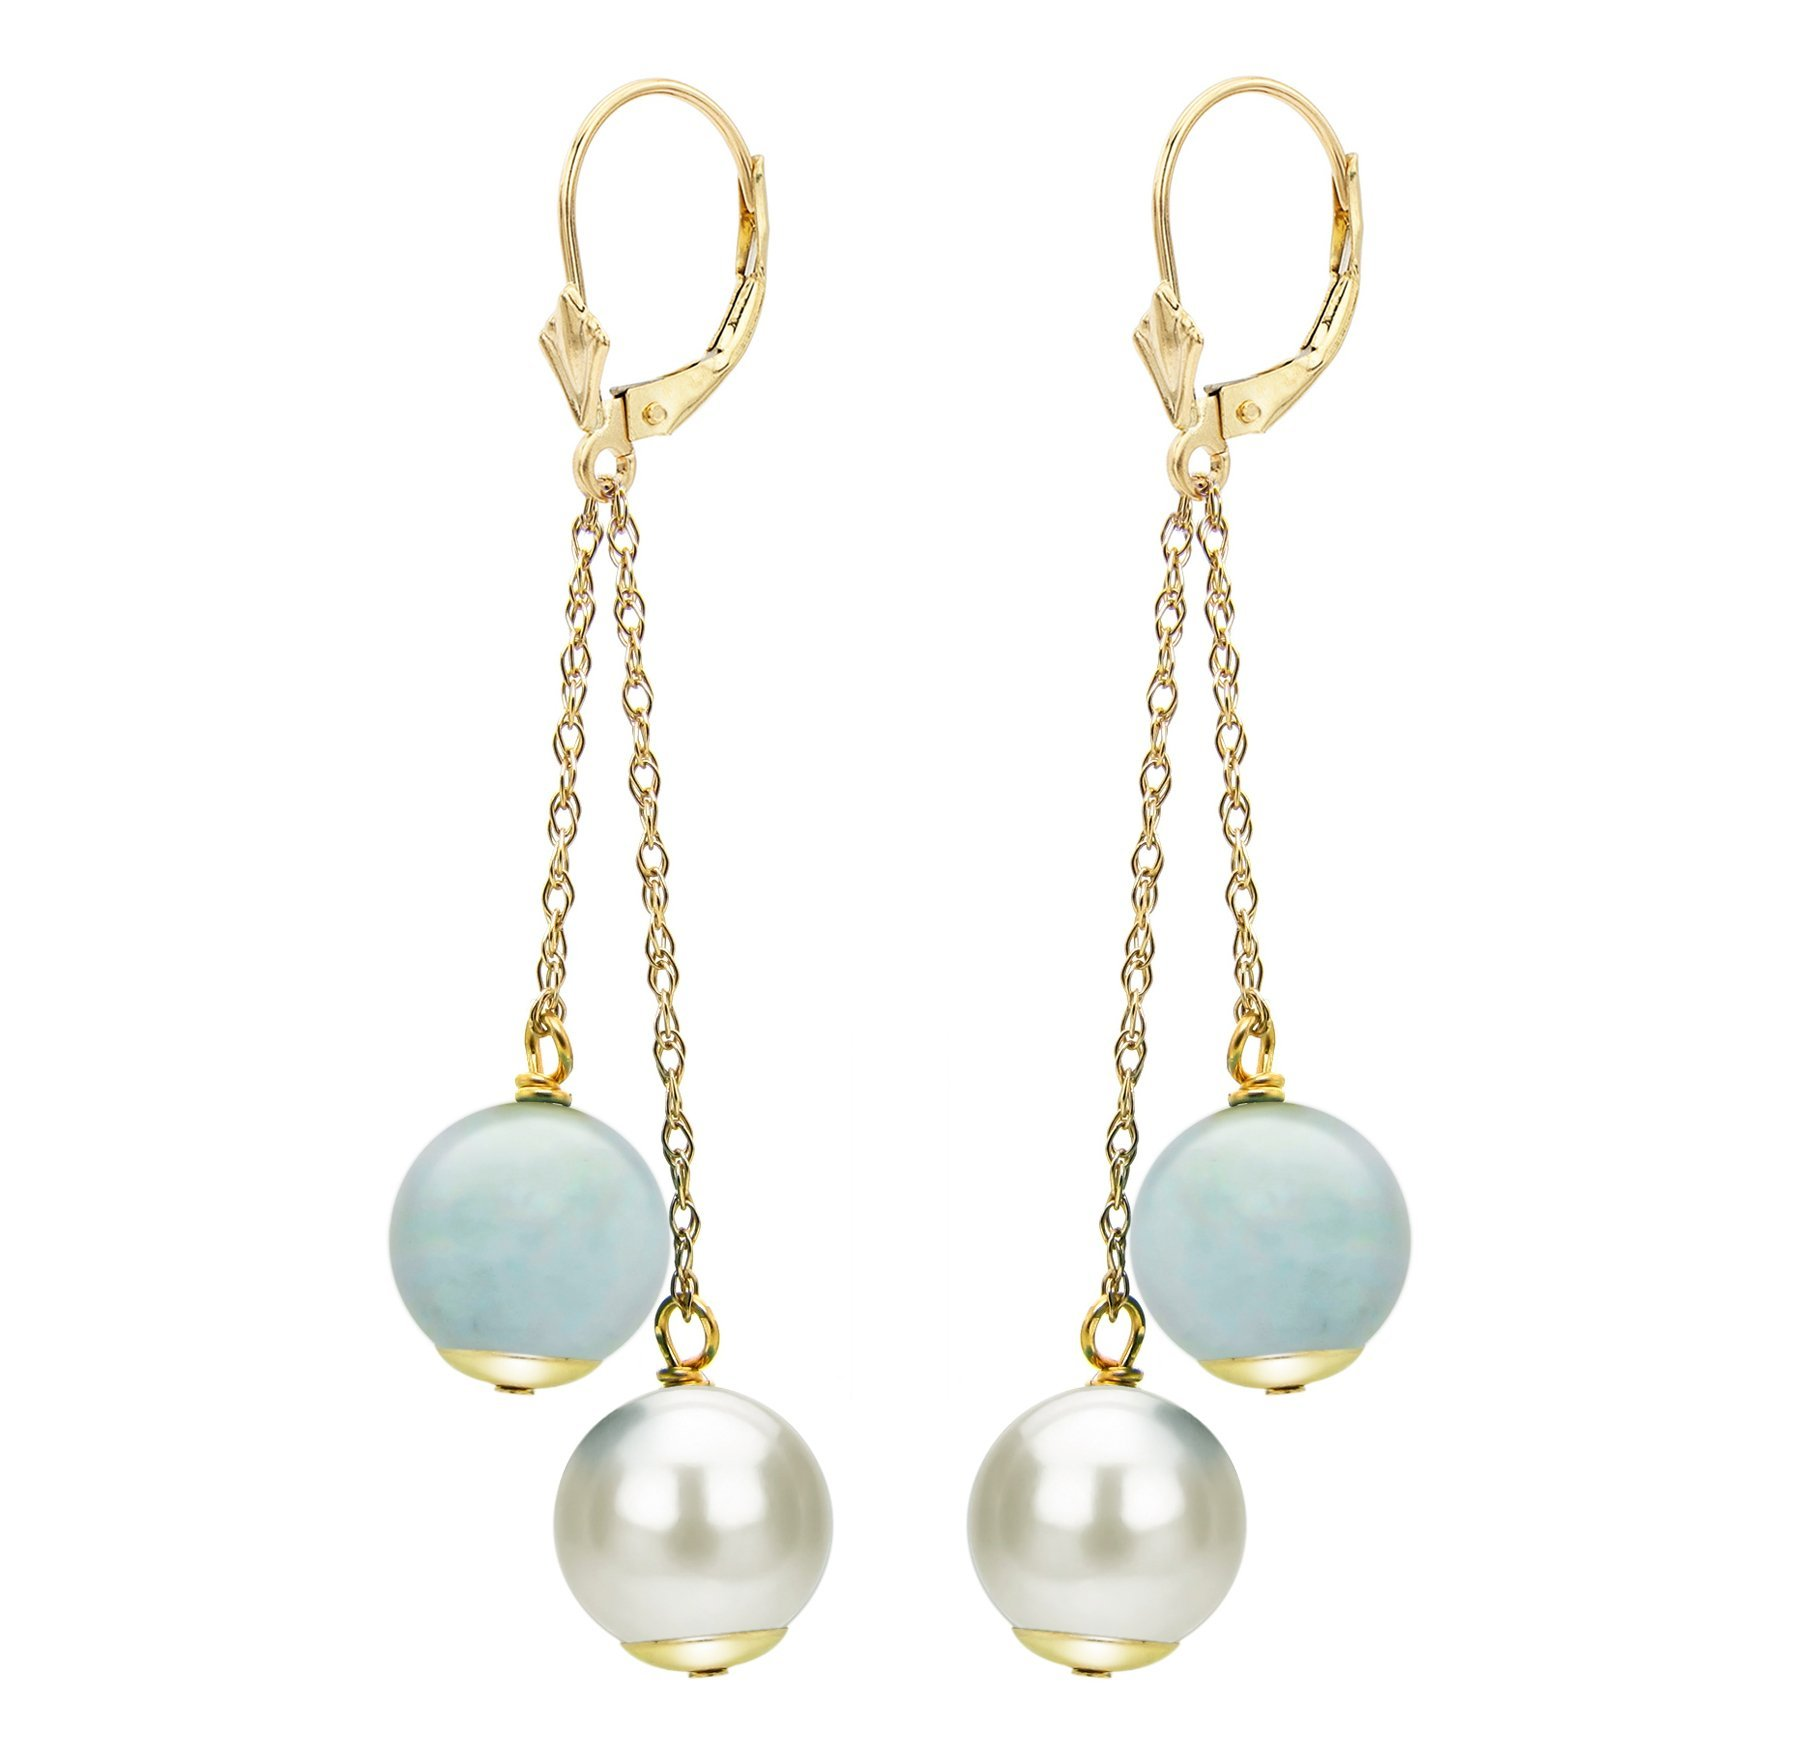 White Cultured Freshwater Pearl Earrings 14K Gold Leverback Simulated Aquamarine Bridesmaid Gift 8-8.5mm